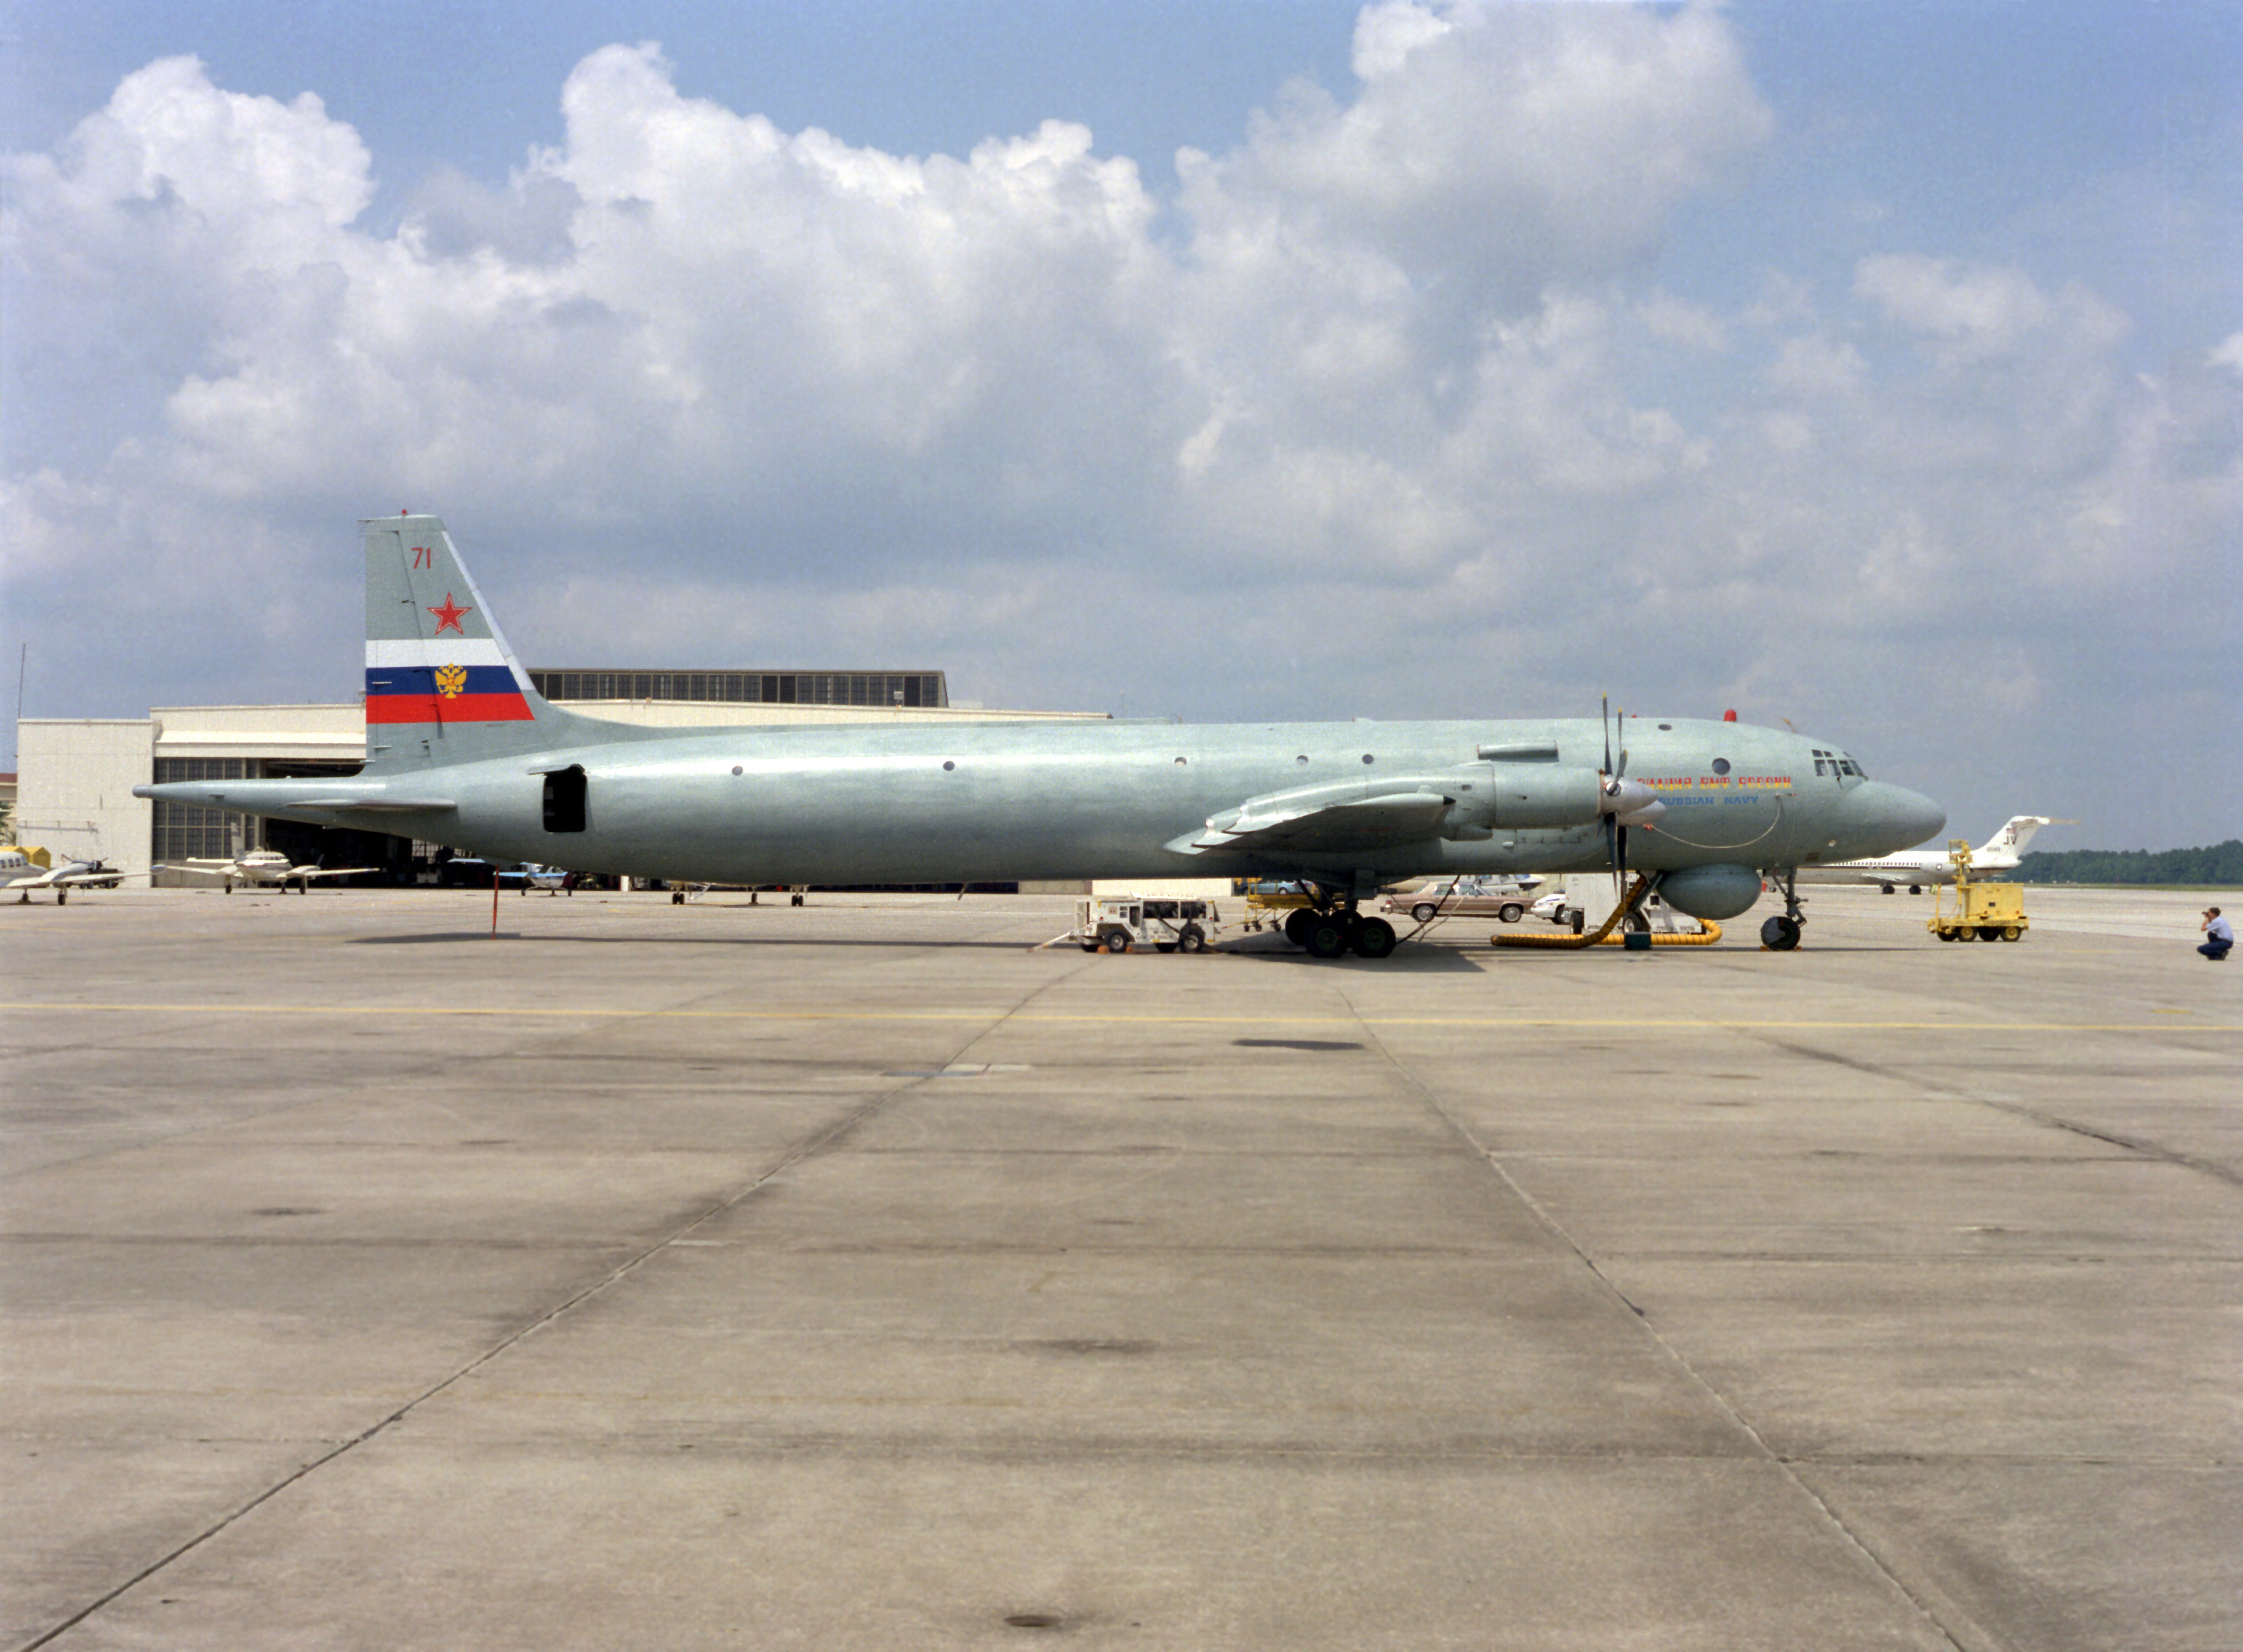 Right side view of a Russian IL-38 May anti-submarine warfare (ASW) patrol aircraft parked on the tarmac